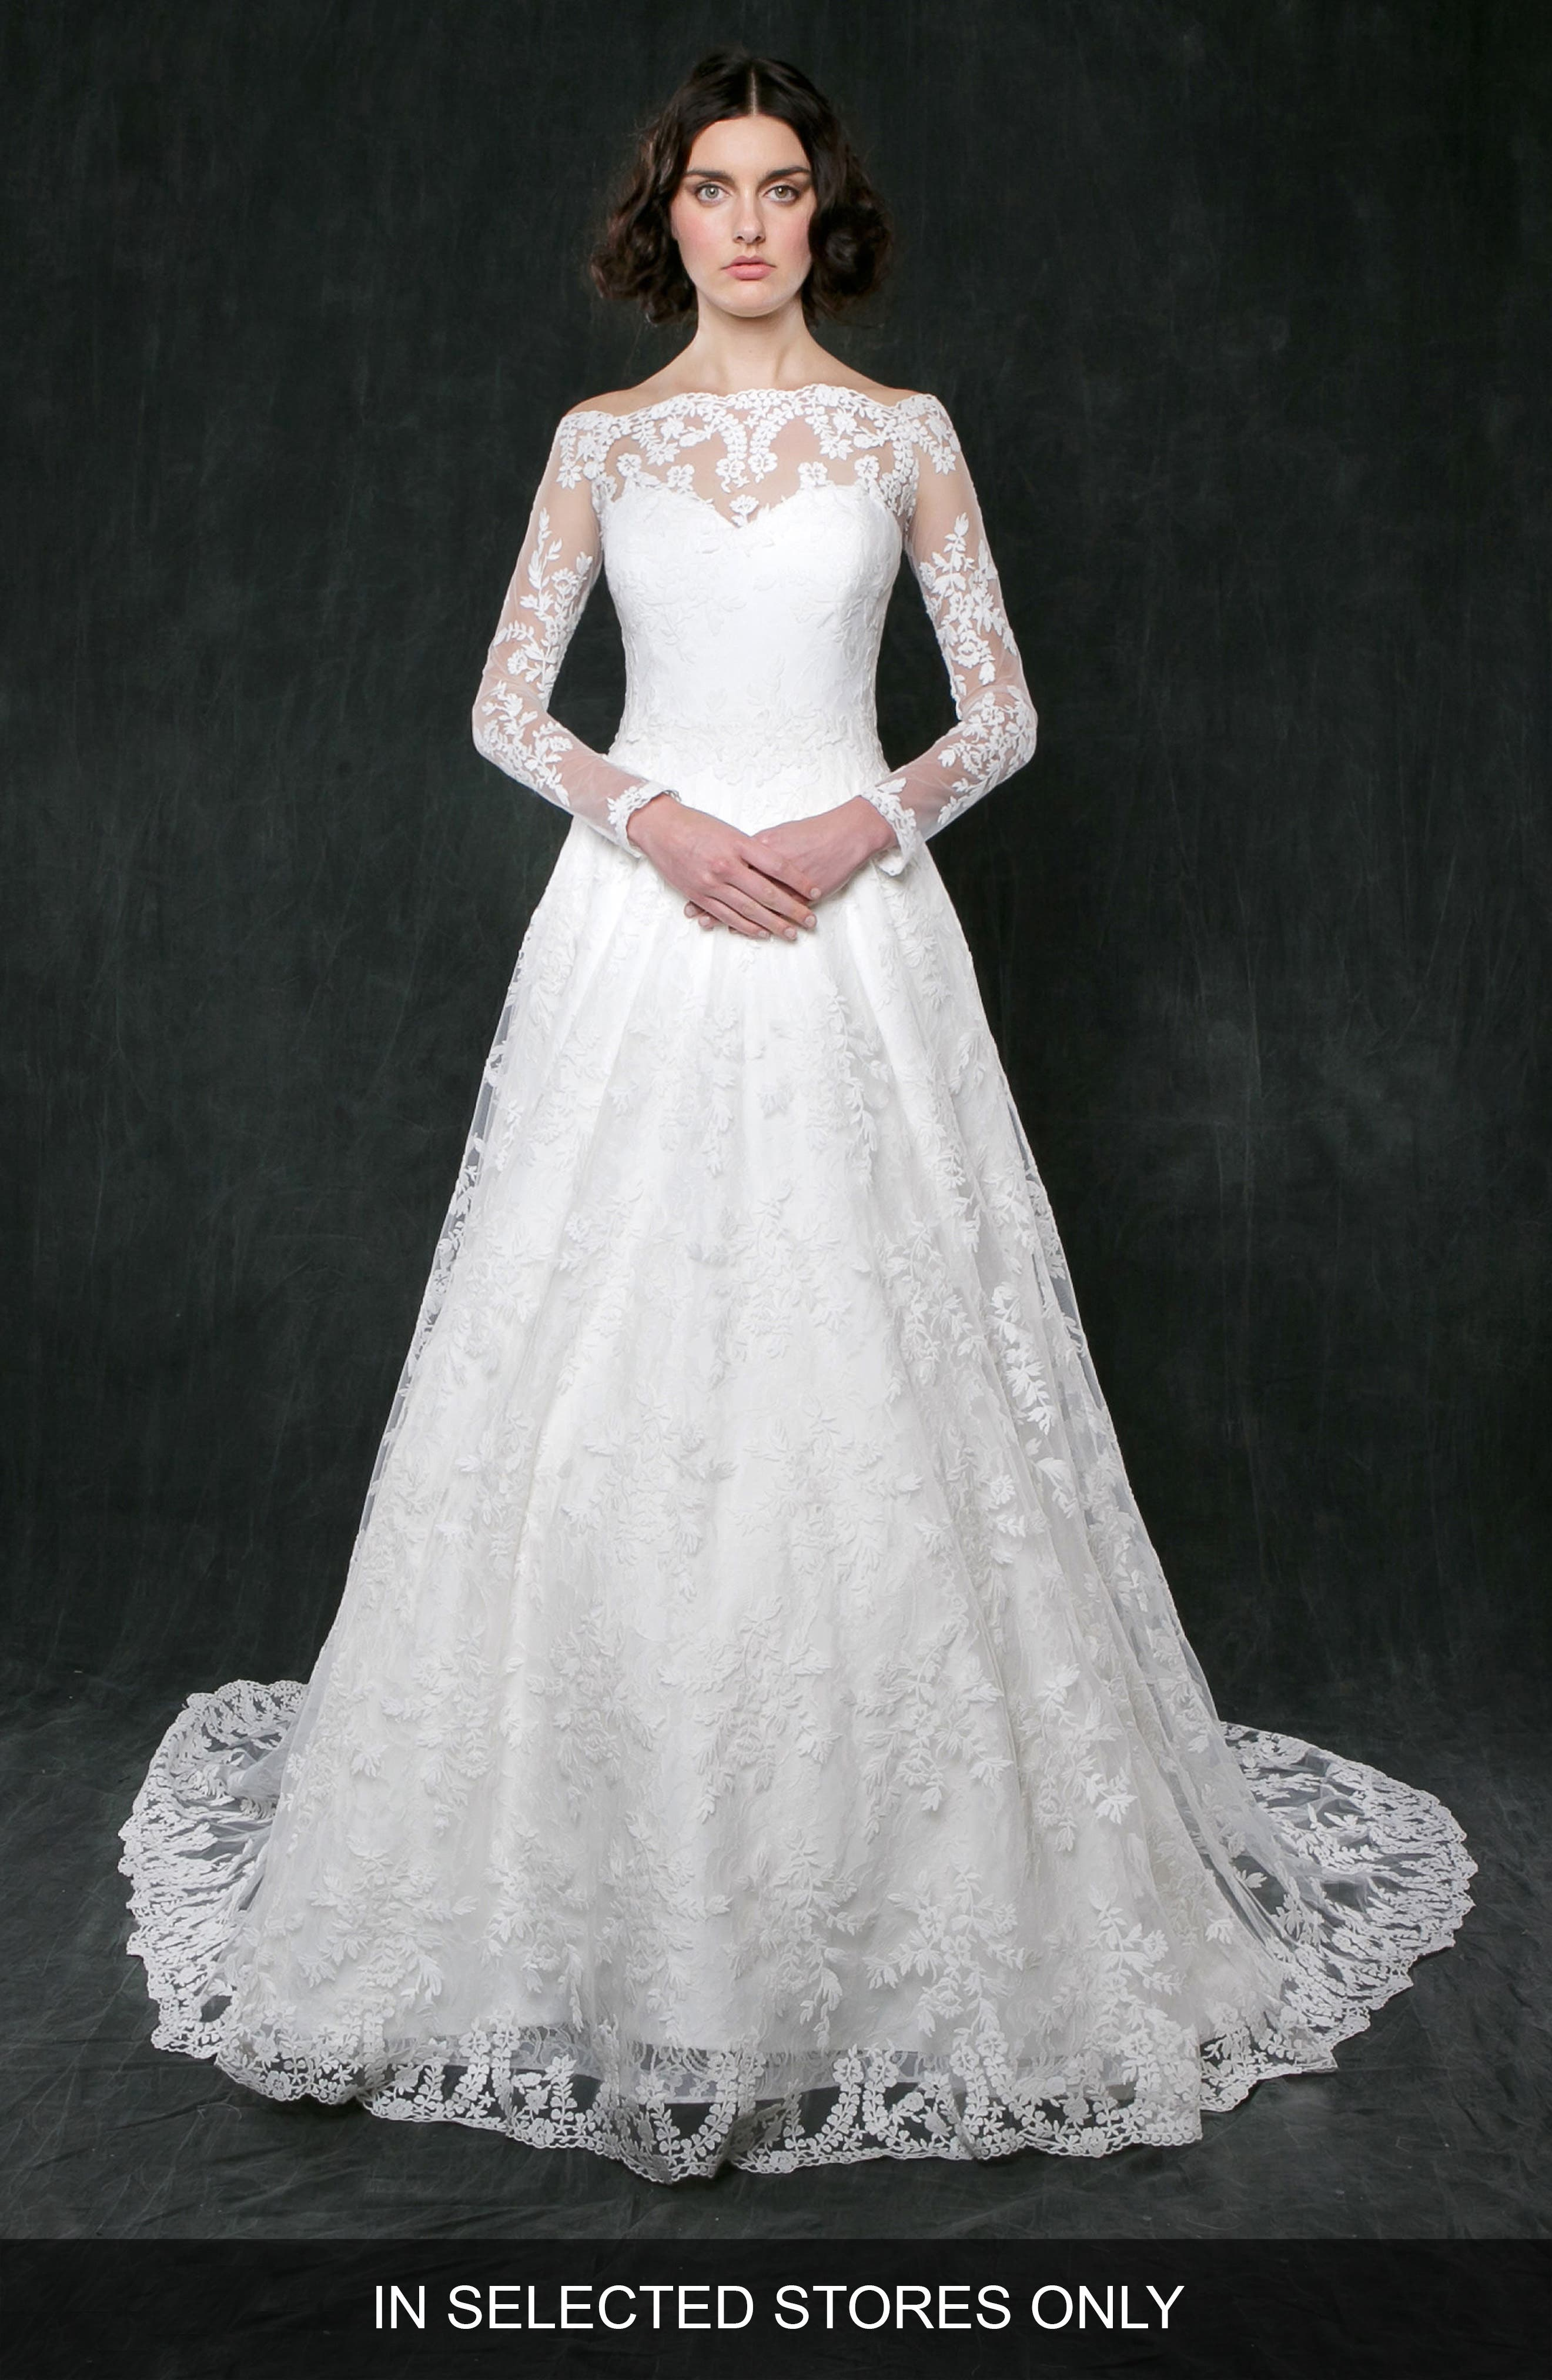 Alternate Image 1 Selected - Sareh Nouri Lily of the Valley Long Sleeve Lace Gown